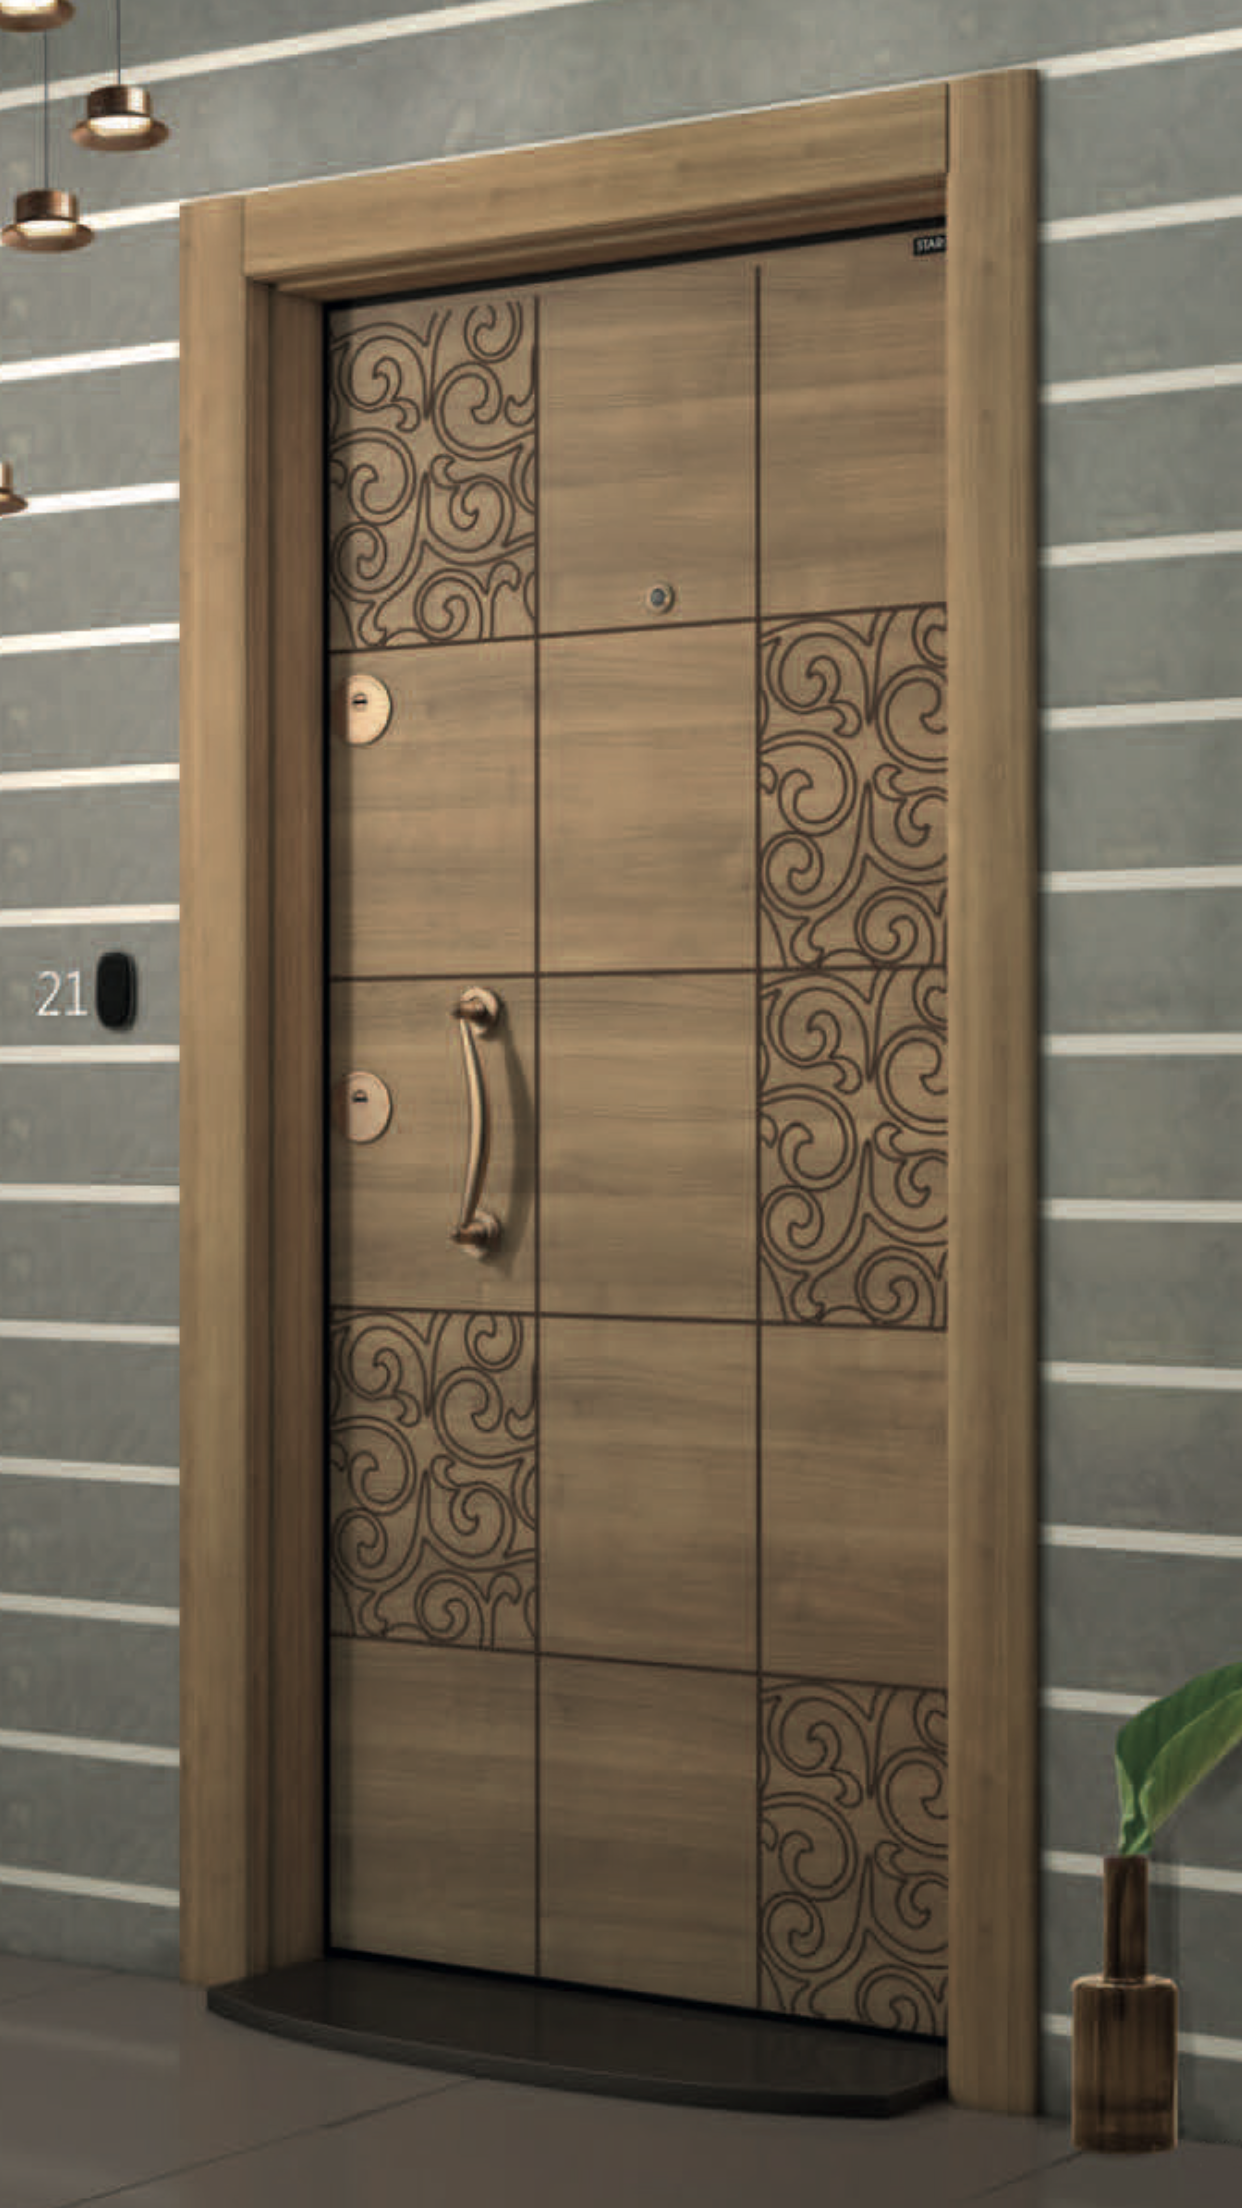 Door designs | Door designs | Pinterest | Porte ...